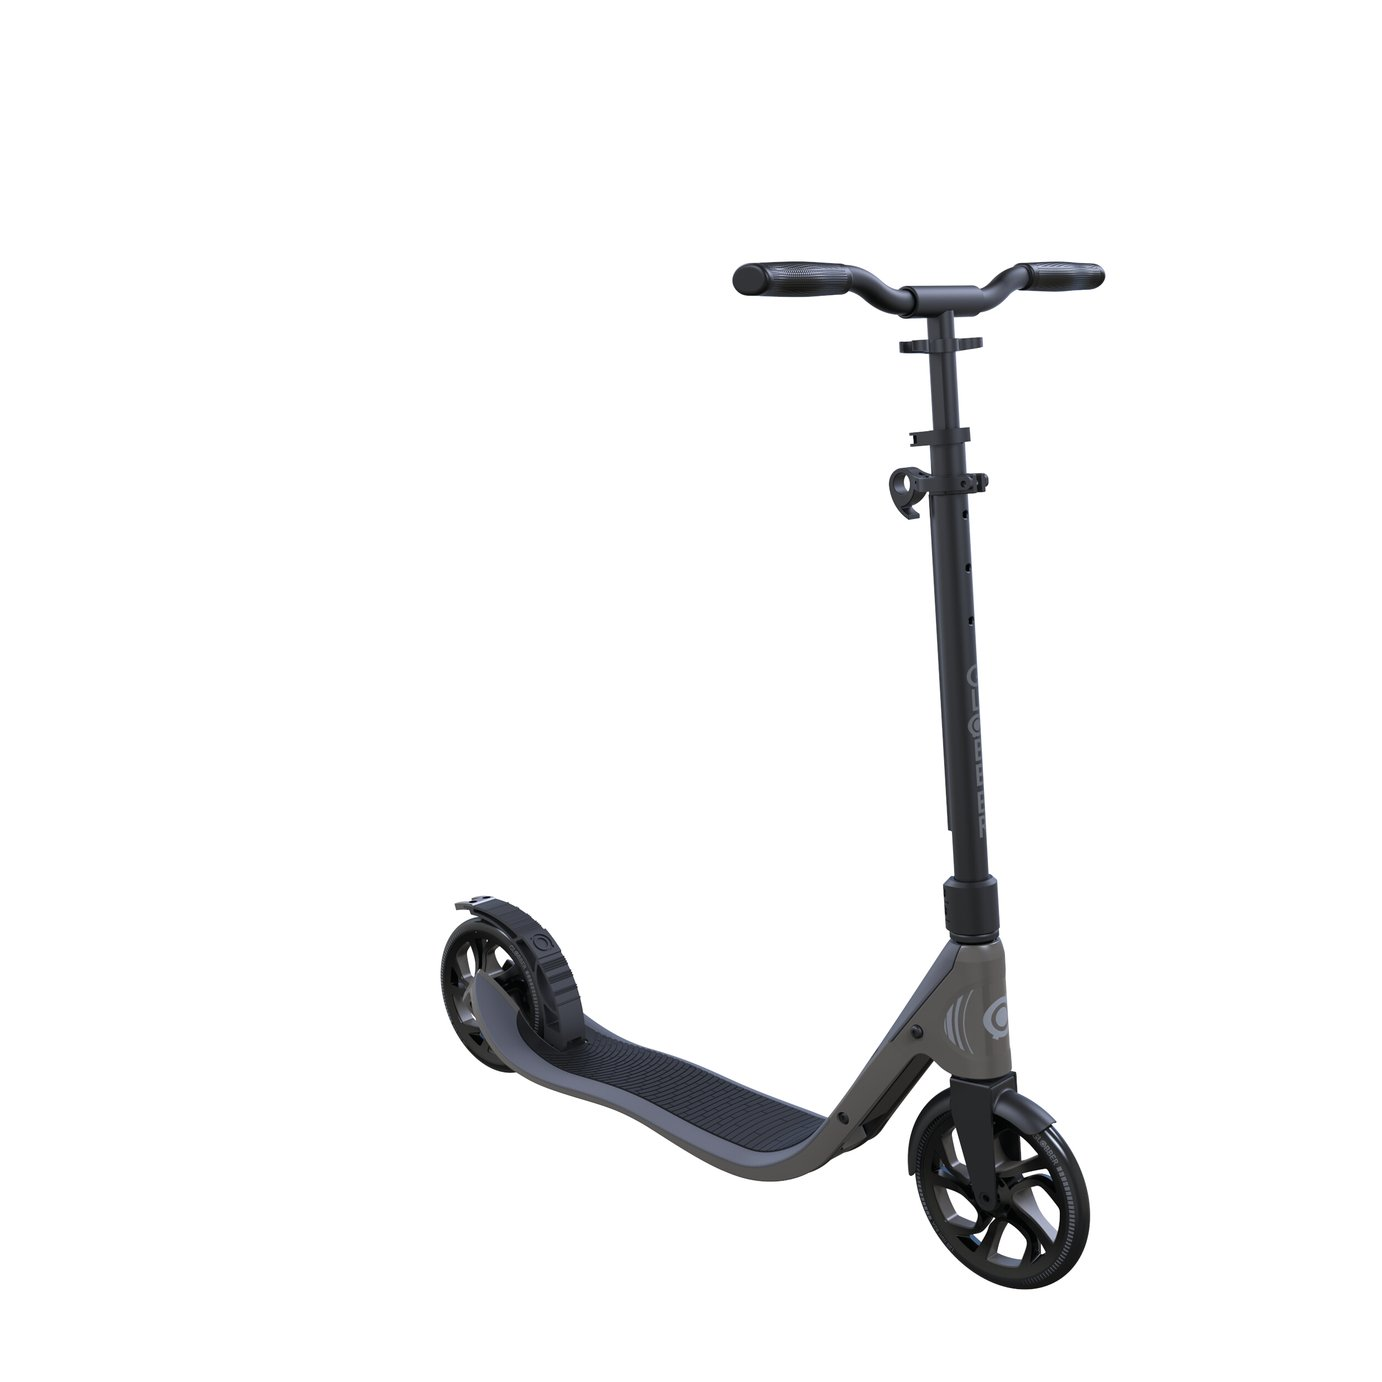 Globber NL 205 Folding Scooter - Black and Grey